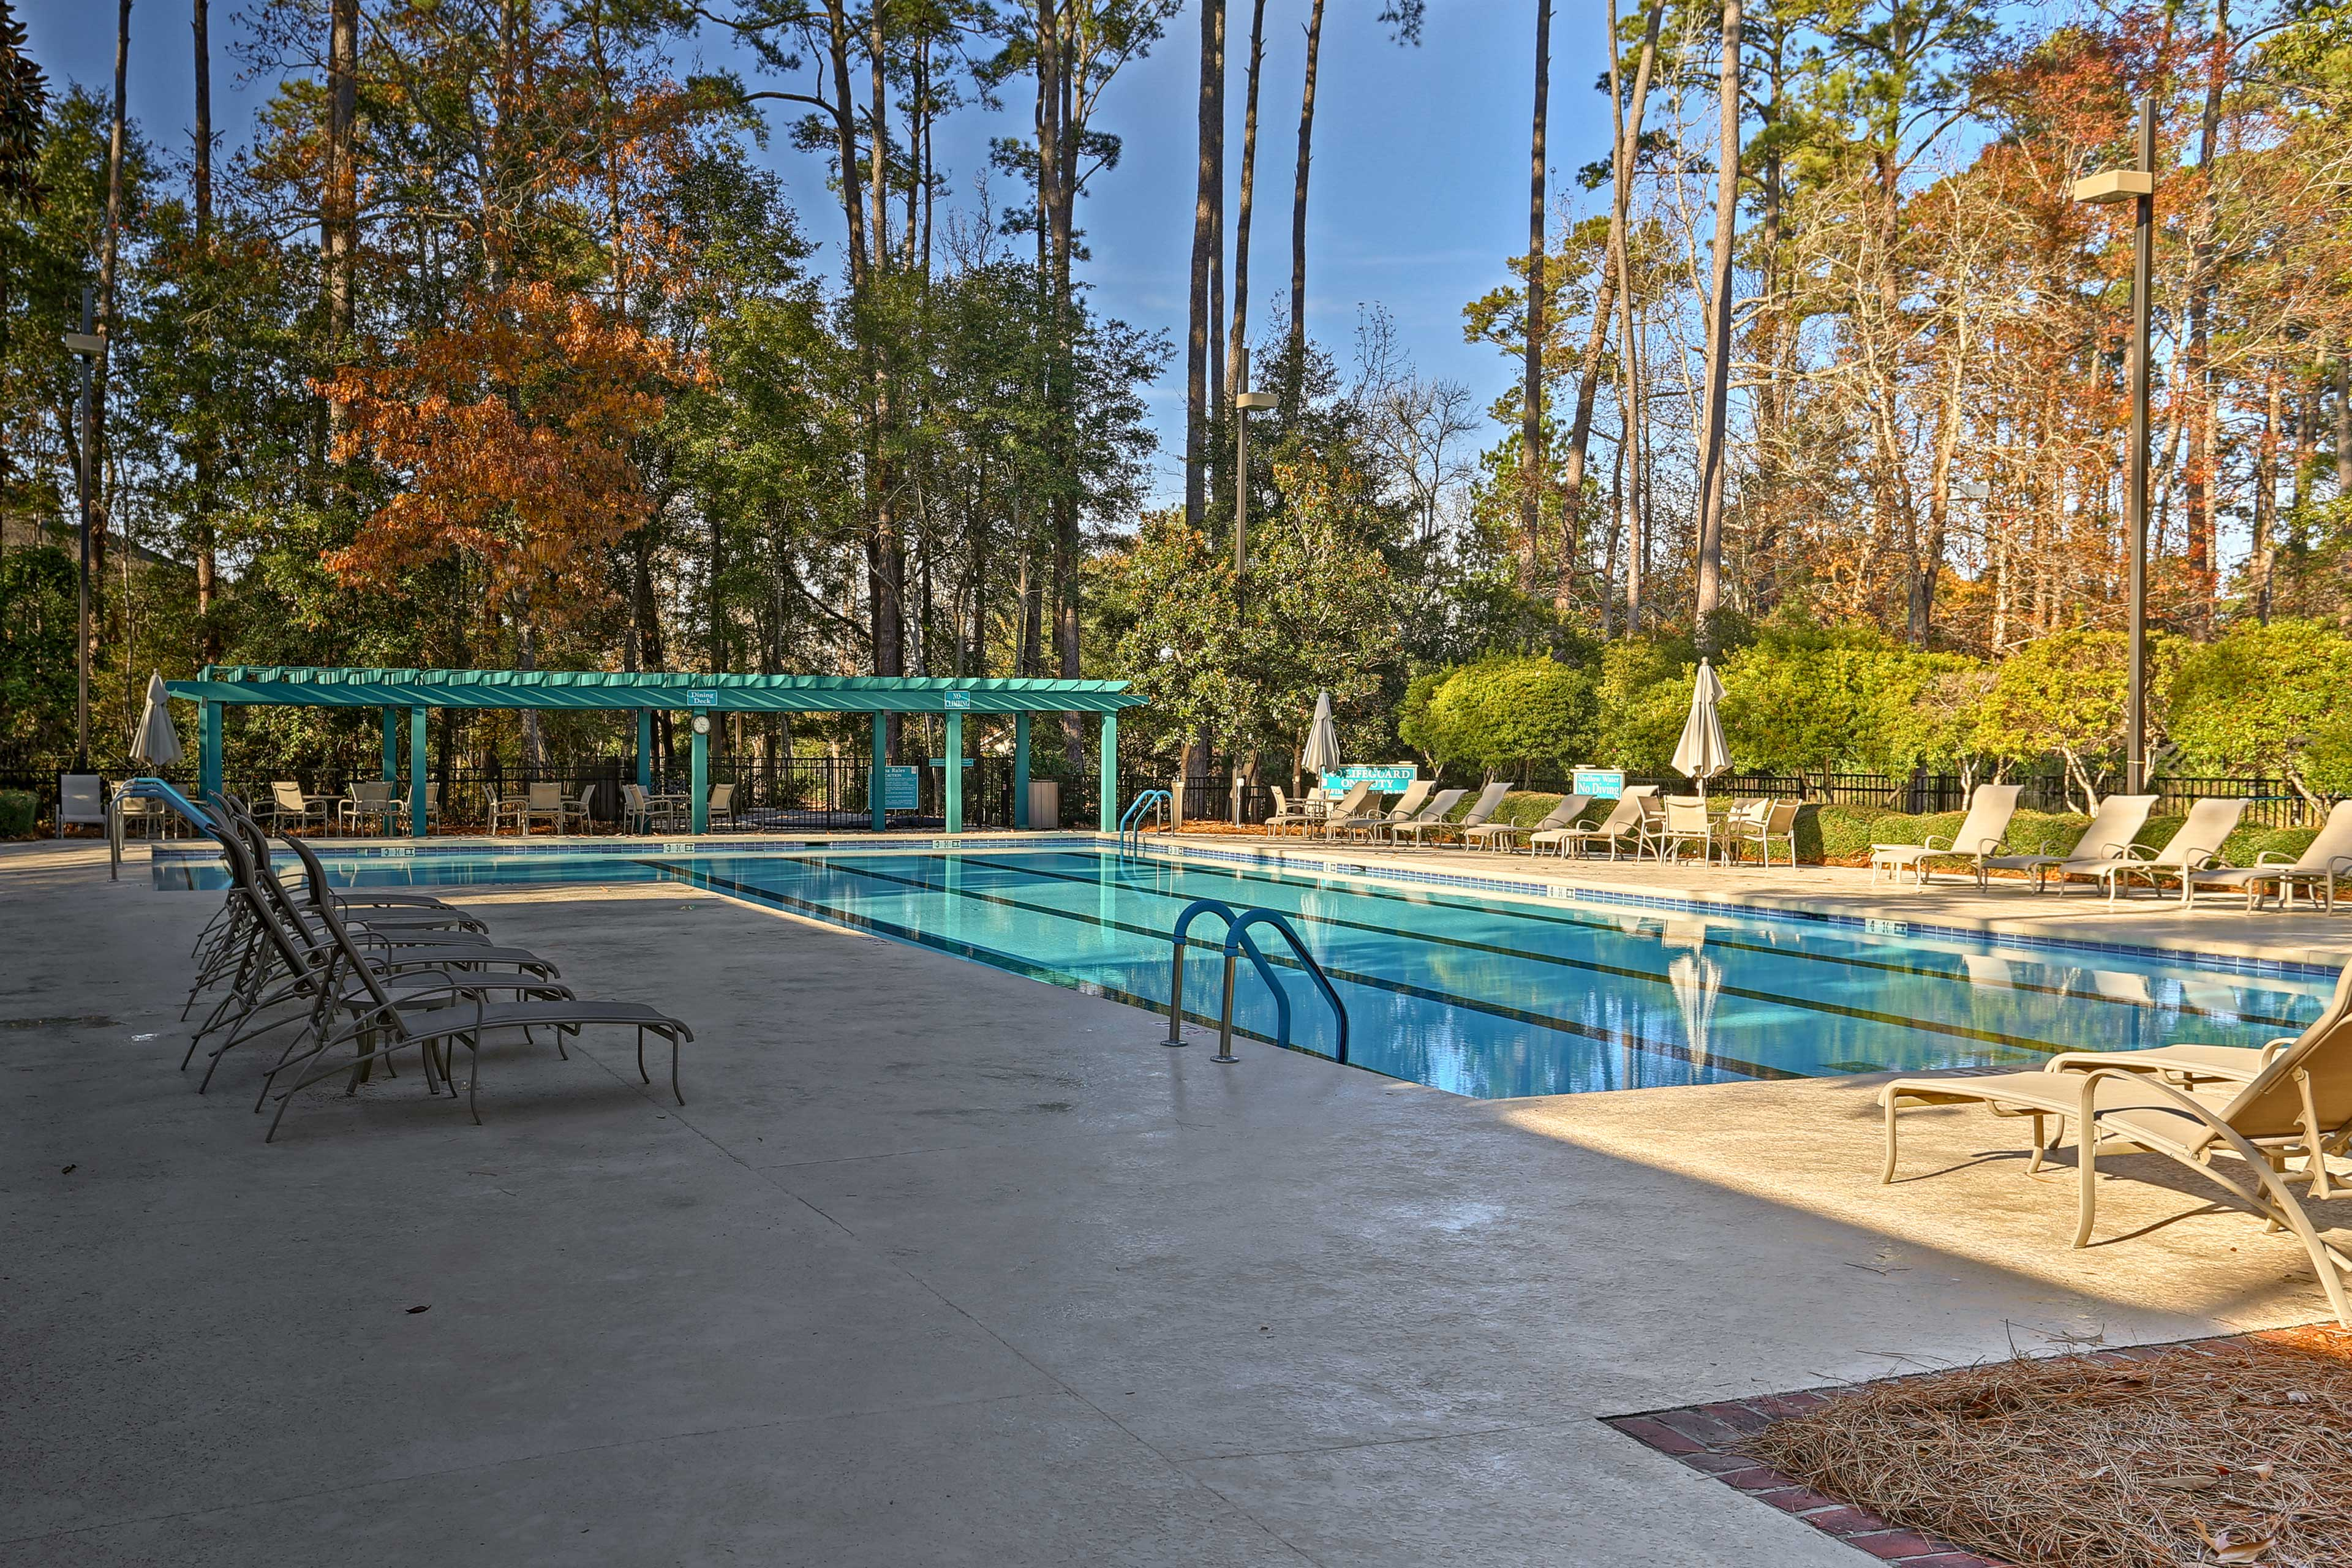 Start your morning with swimming some laps in the outdoor pool.